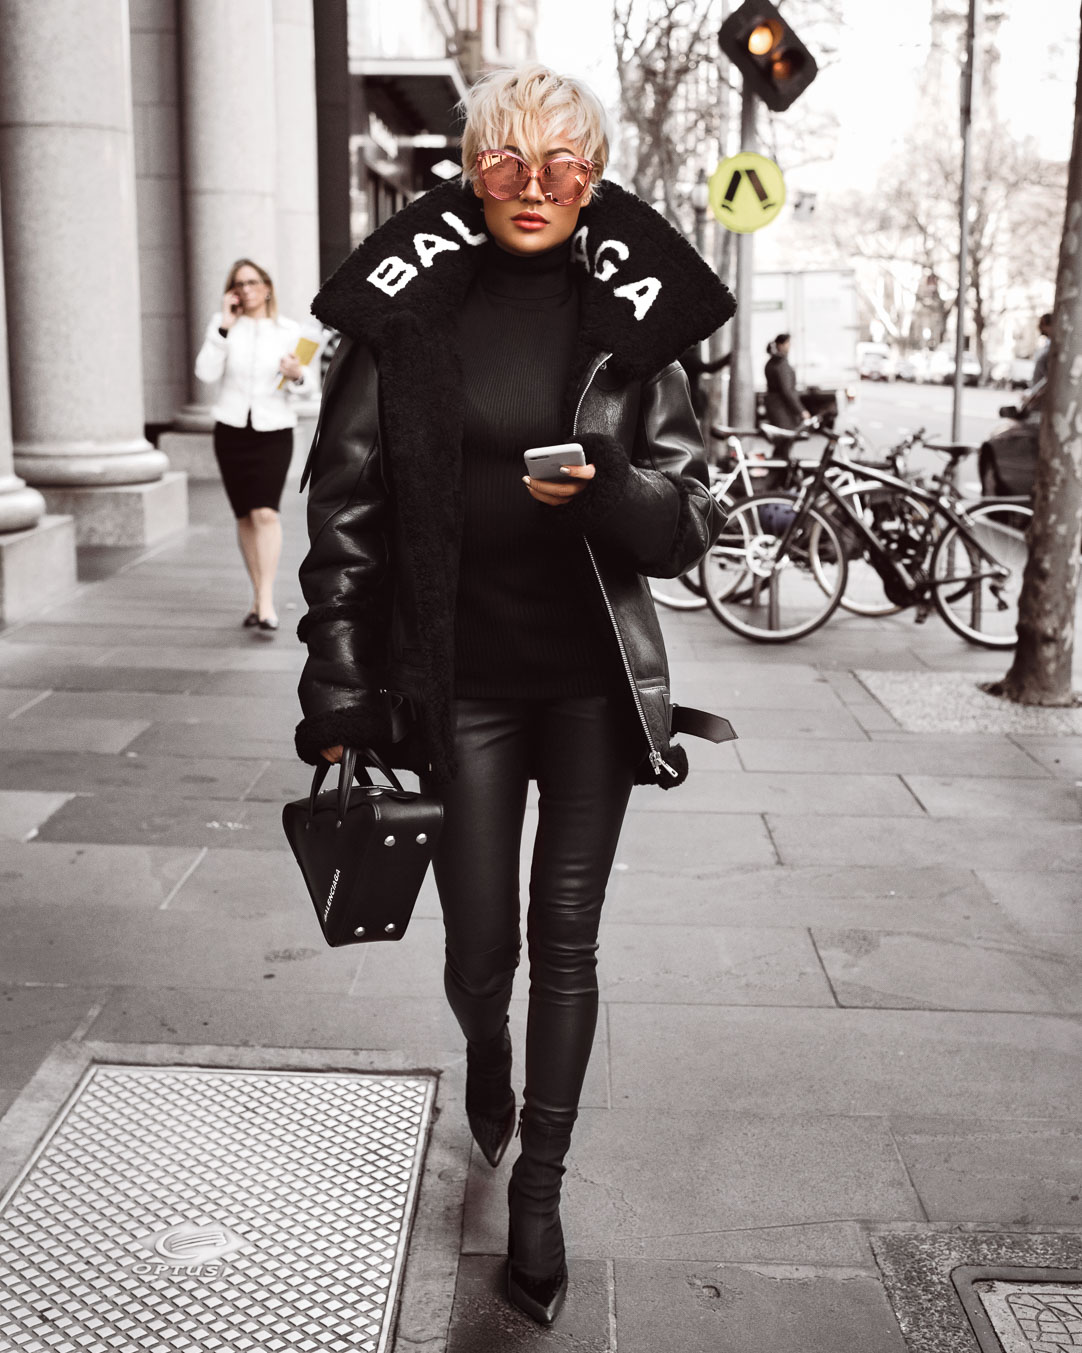 Micah-Gianneli-Influencer-Fashion-Blogger-OnPoint.photo-Onpoint-Melbourne-Australia-Vogue-Editorial-Balenciaga-Harrolds-Linda-Farrow-Luxury-Chic-Designer-Aviator-Jacket